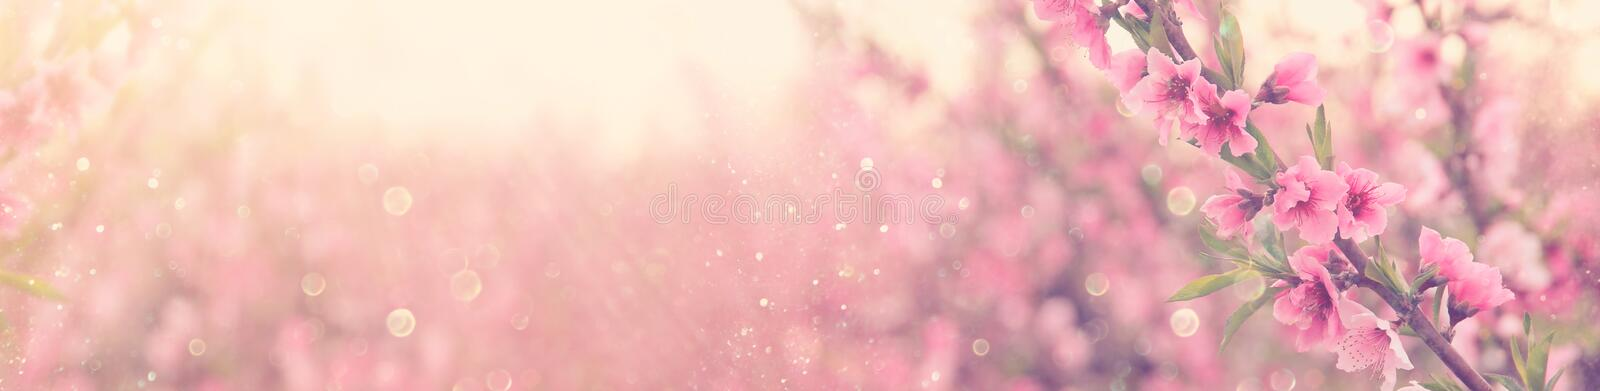 abstract and dreamy banner background of of spring blossoms tree with pink flowers. selective focus. glitter overlay. stock photos